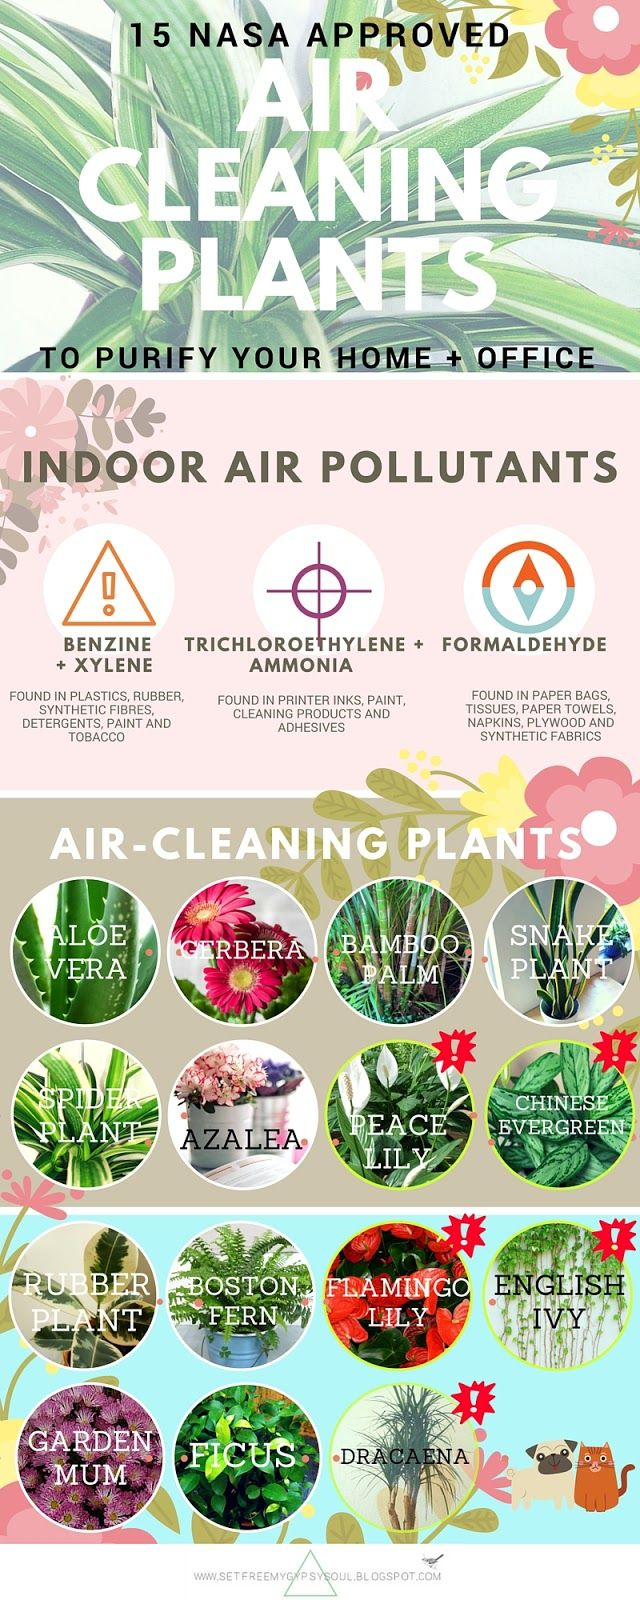 Air Purifying Houseplants |15 air-cleaning plants to purify the air in your home, office or workspace from the NASA Clean Air Study